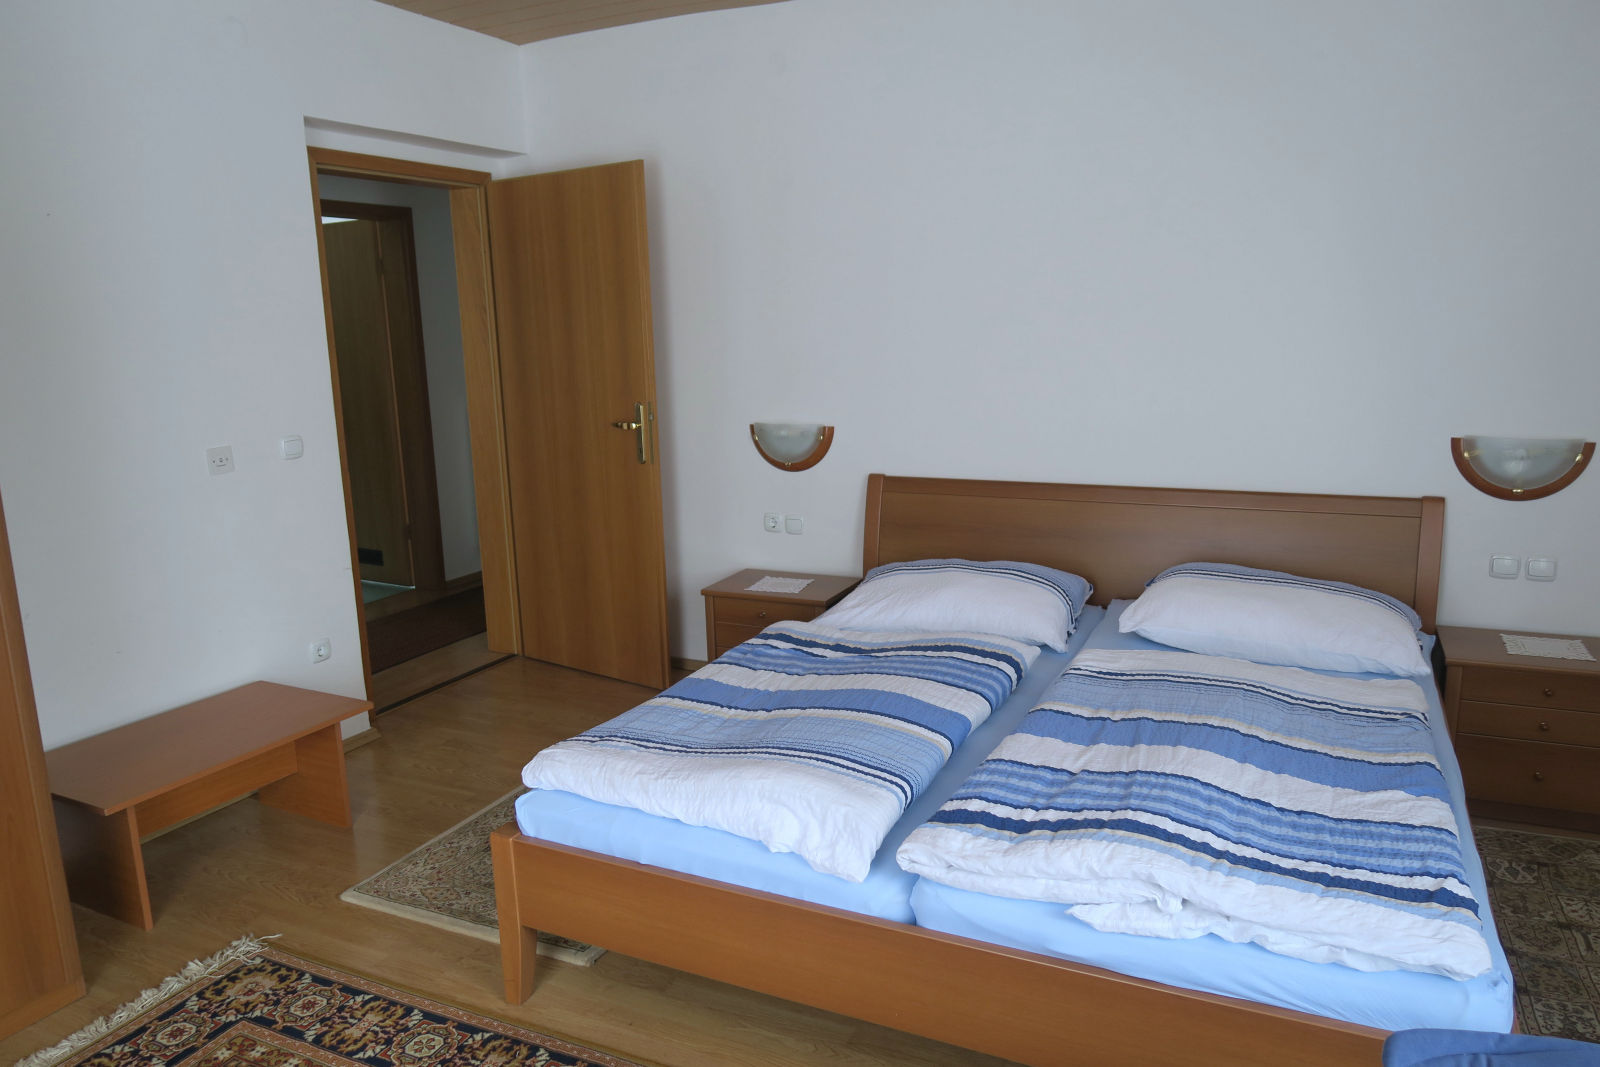 A large double bed and two nightstands in the first bedroom of the Fine Stay Bled apartment in Lake Bled, Slovenia